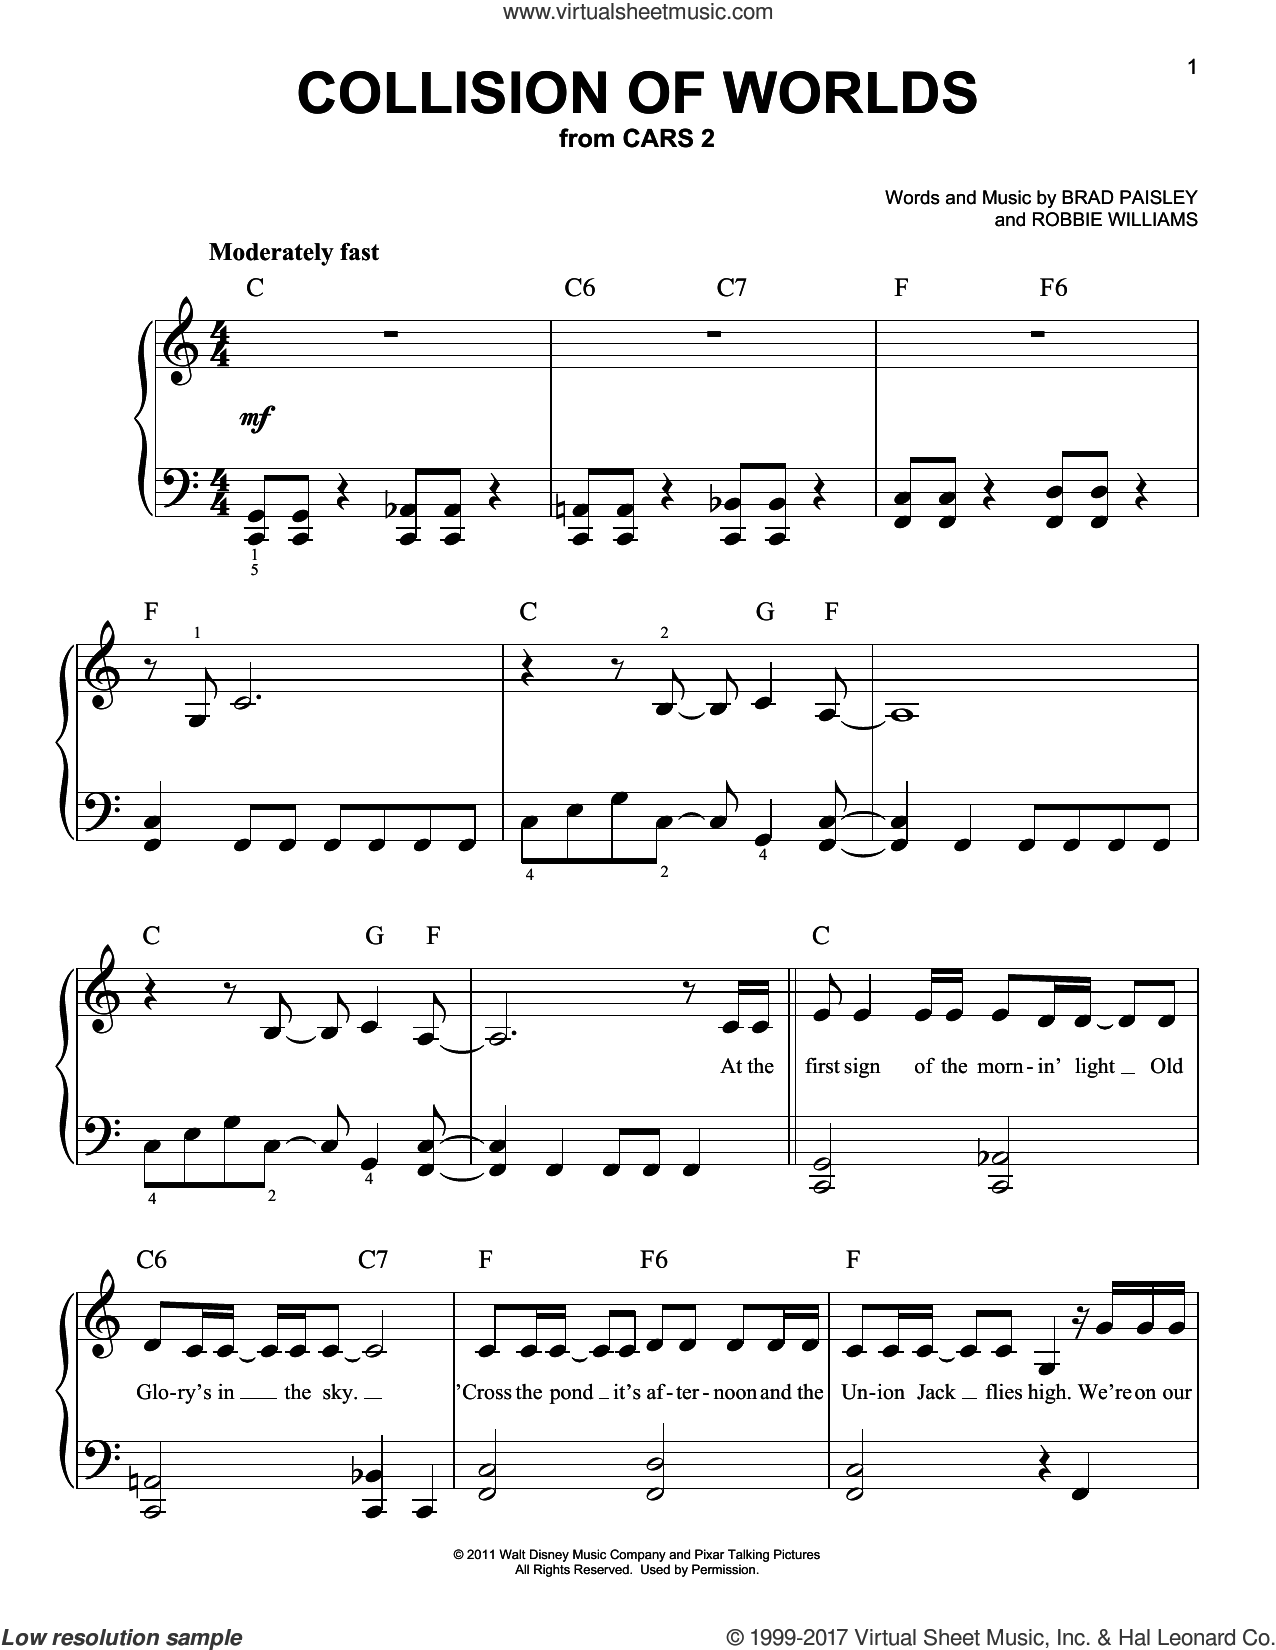 Collision Of Worlds sheet music for piano solo by Brad Paisley and Robbie Williams, easy skill level